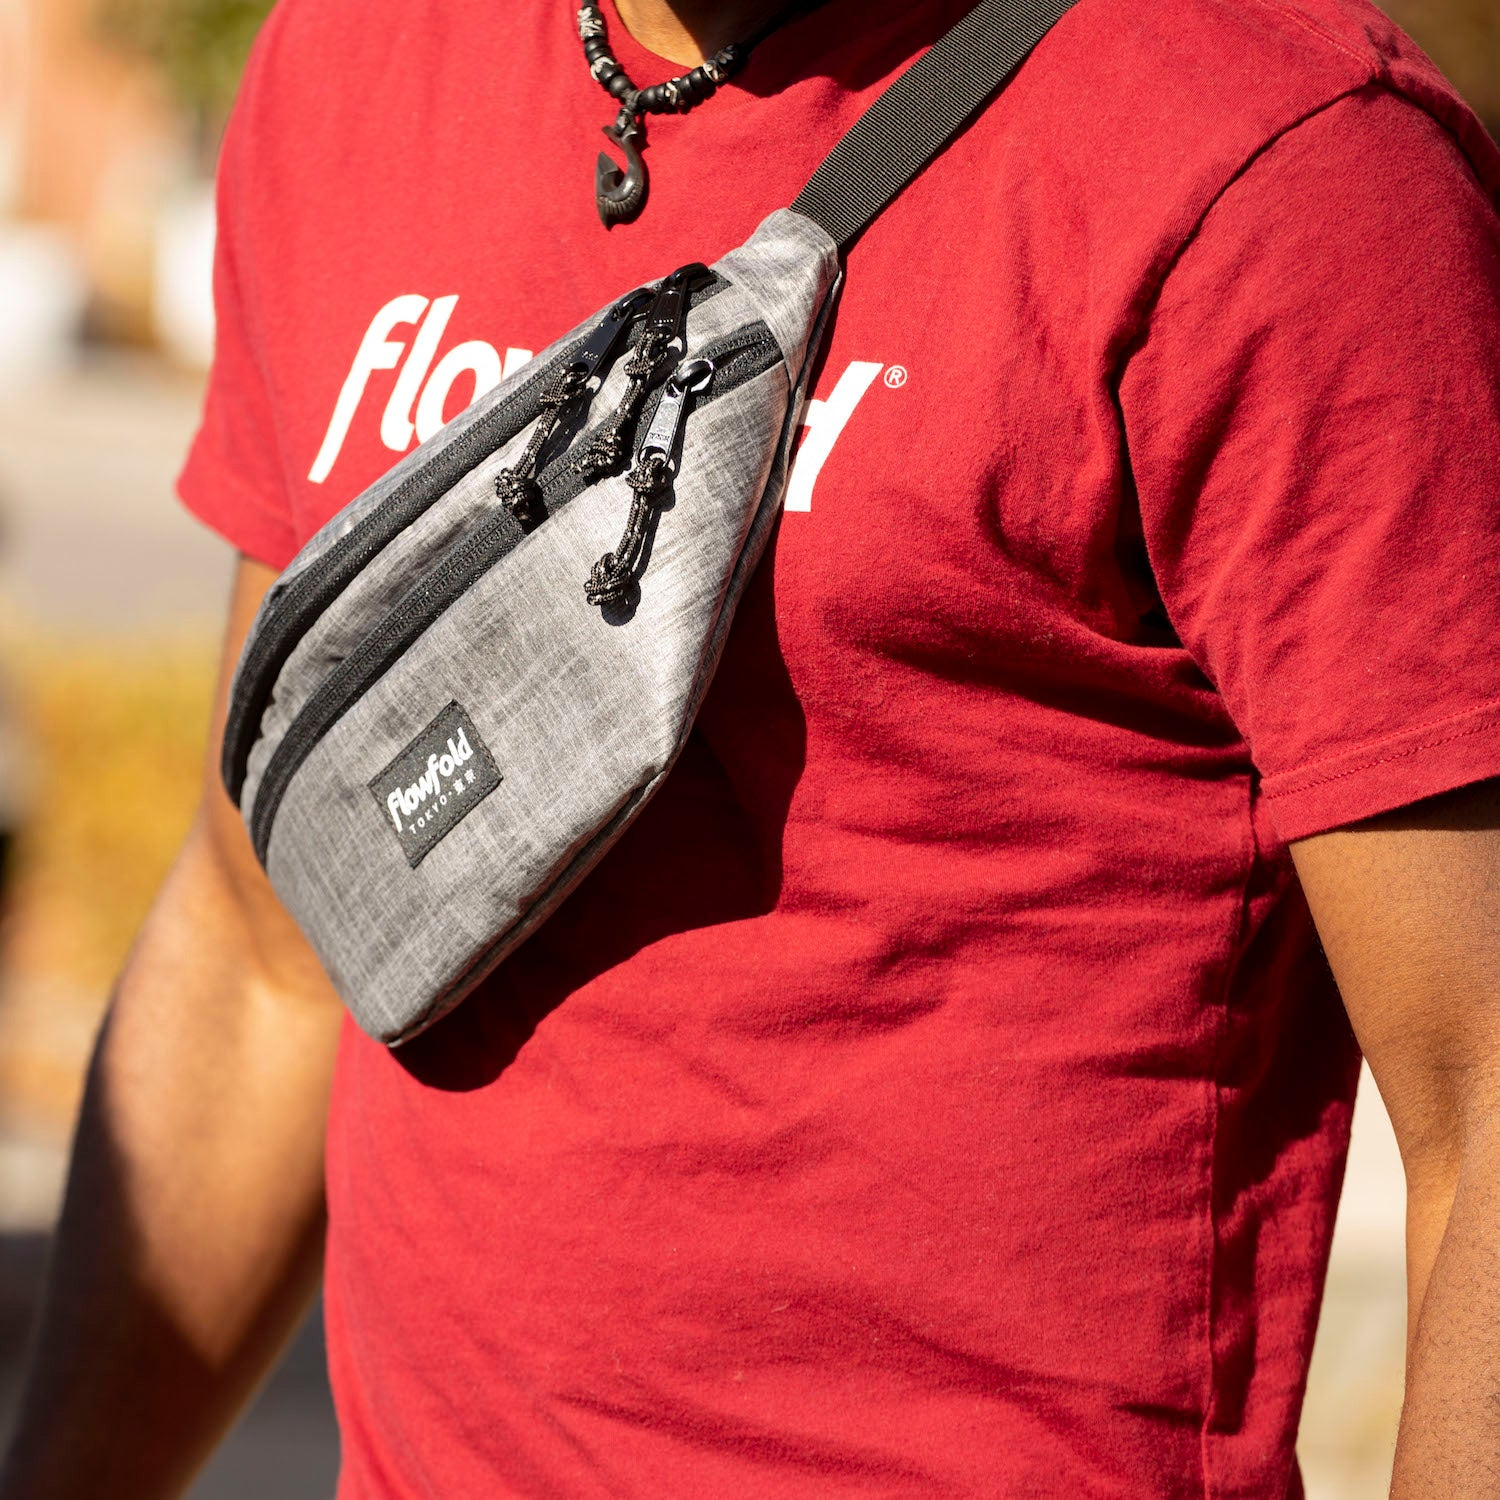 Flowfold large fanny pack with two zippered compartments